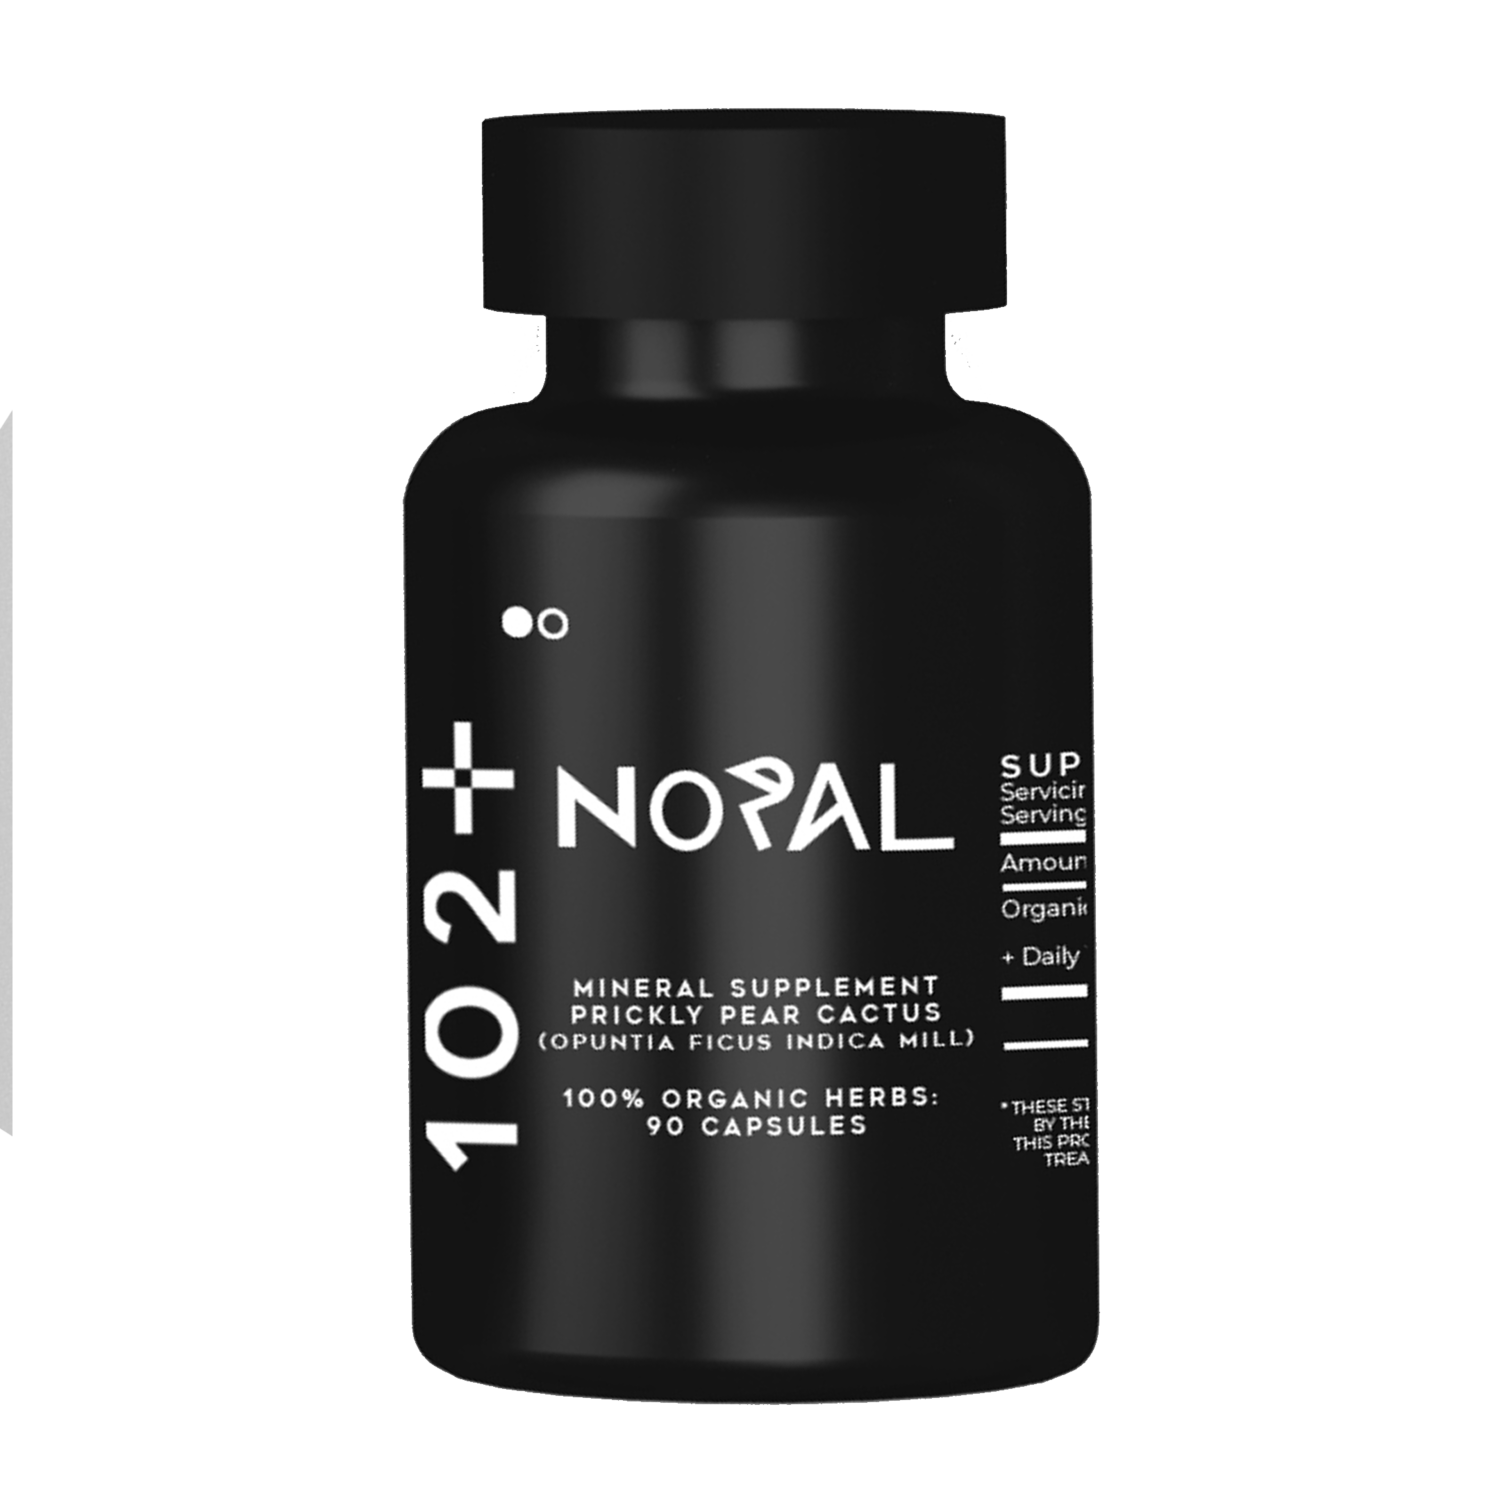 Nopal Cactus Mineral Supplement